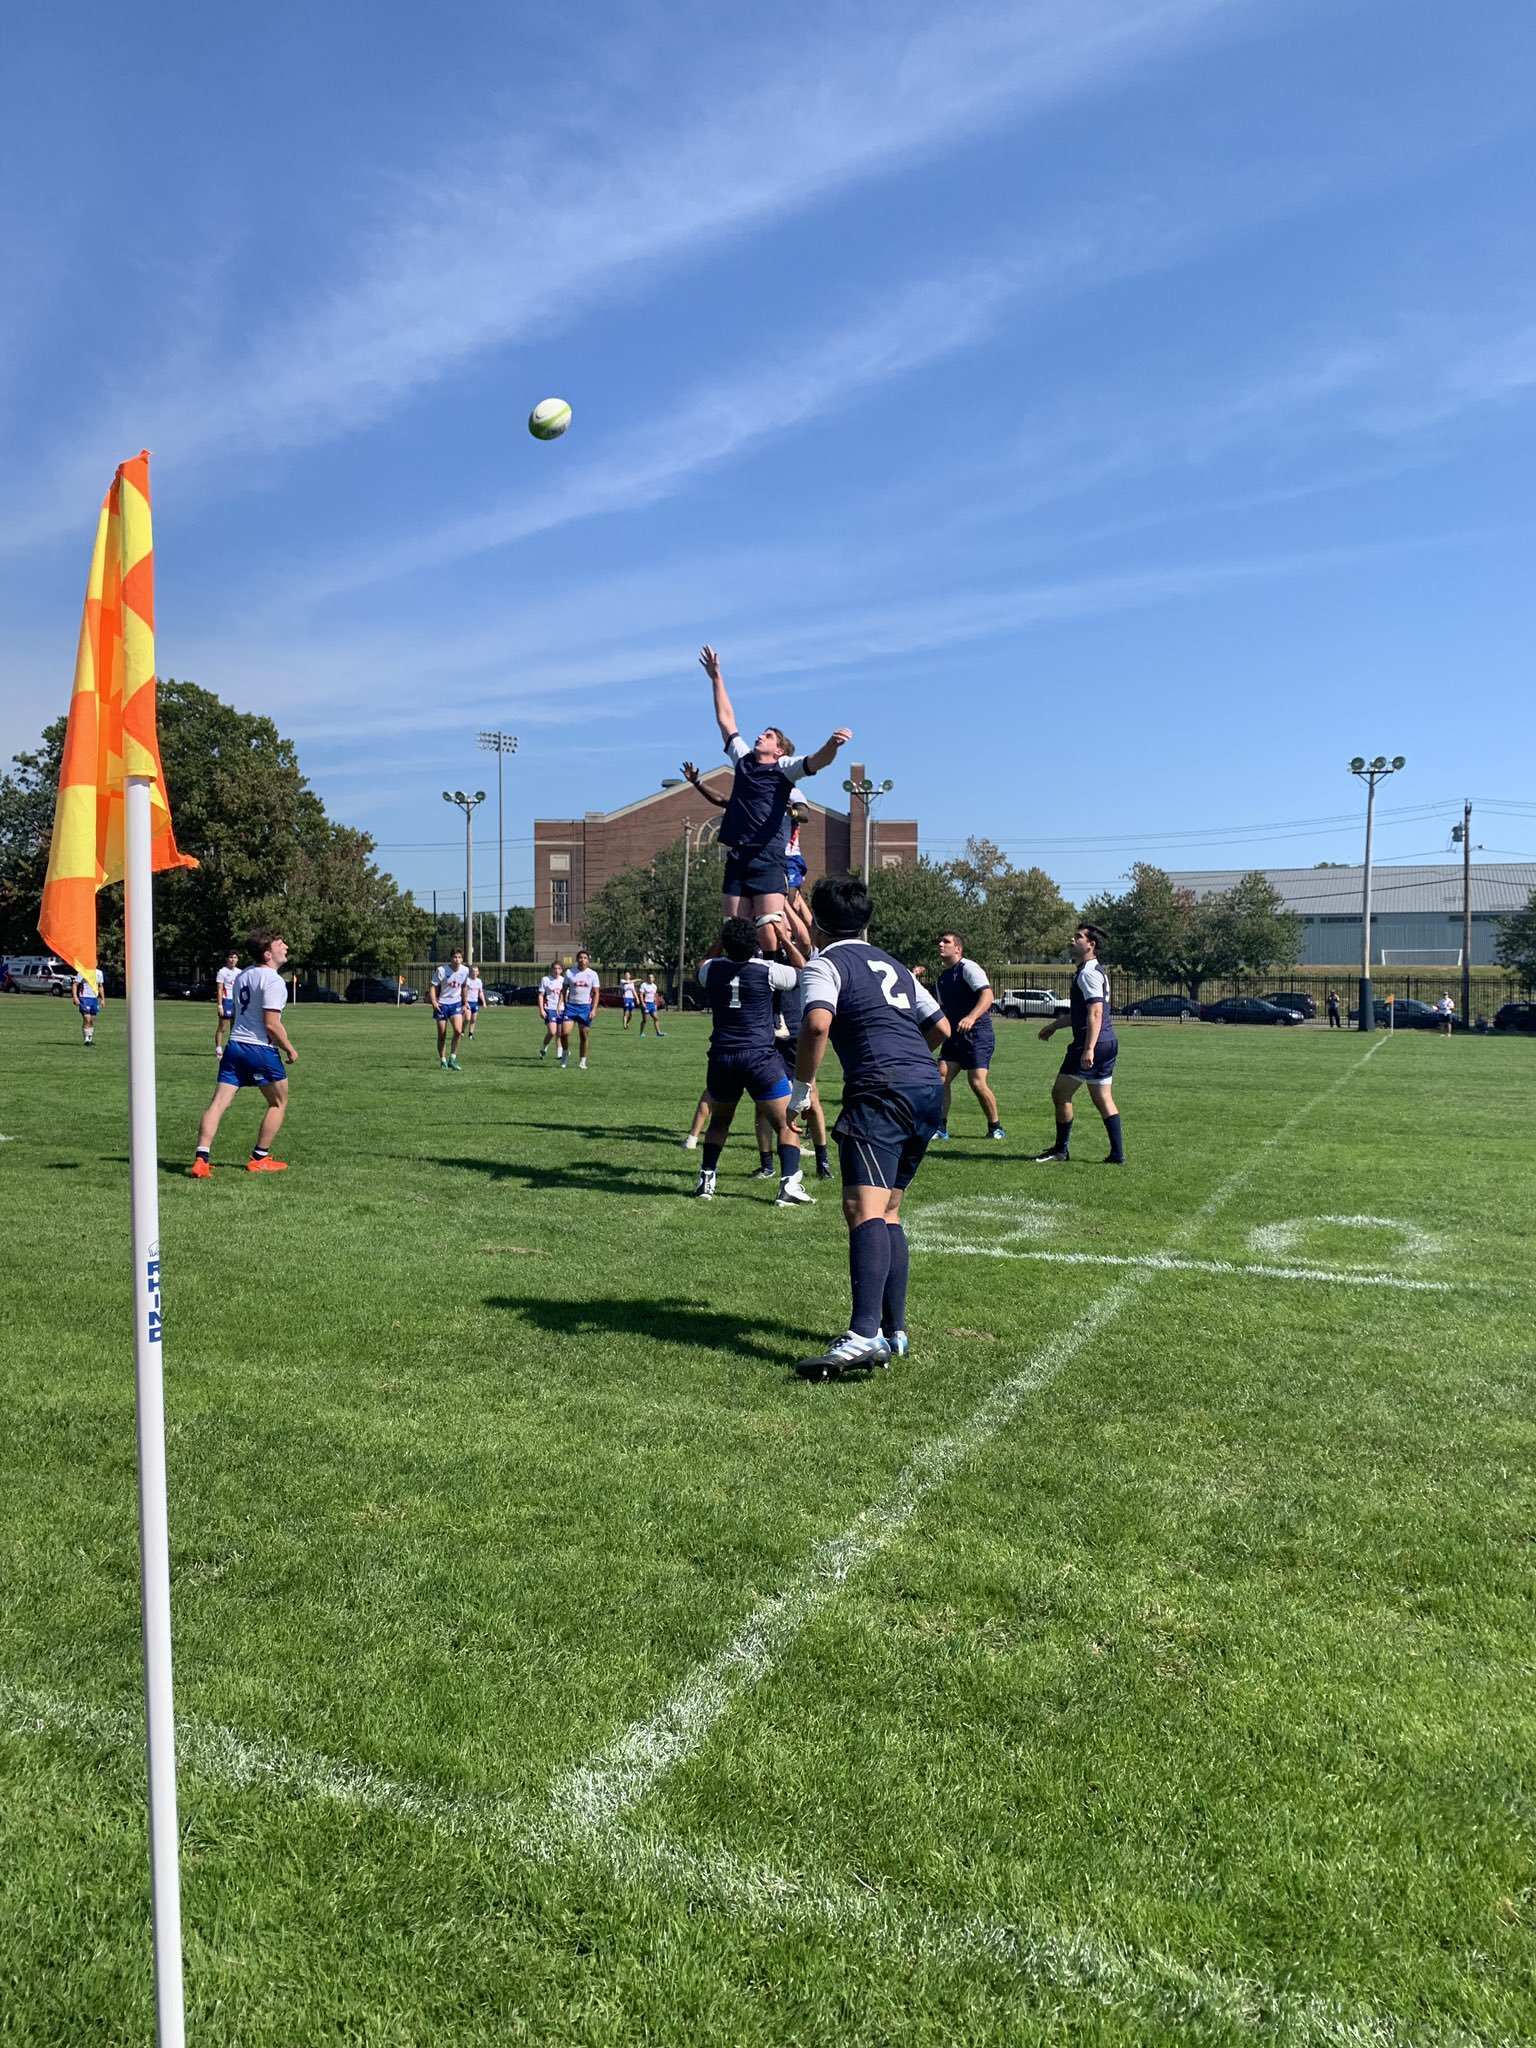 Alex O'Neill '20 competes in the air at a line out.